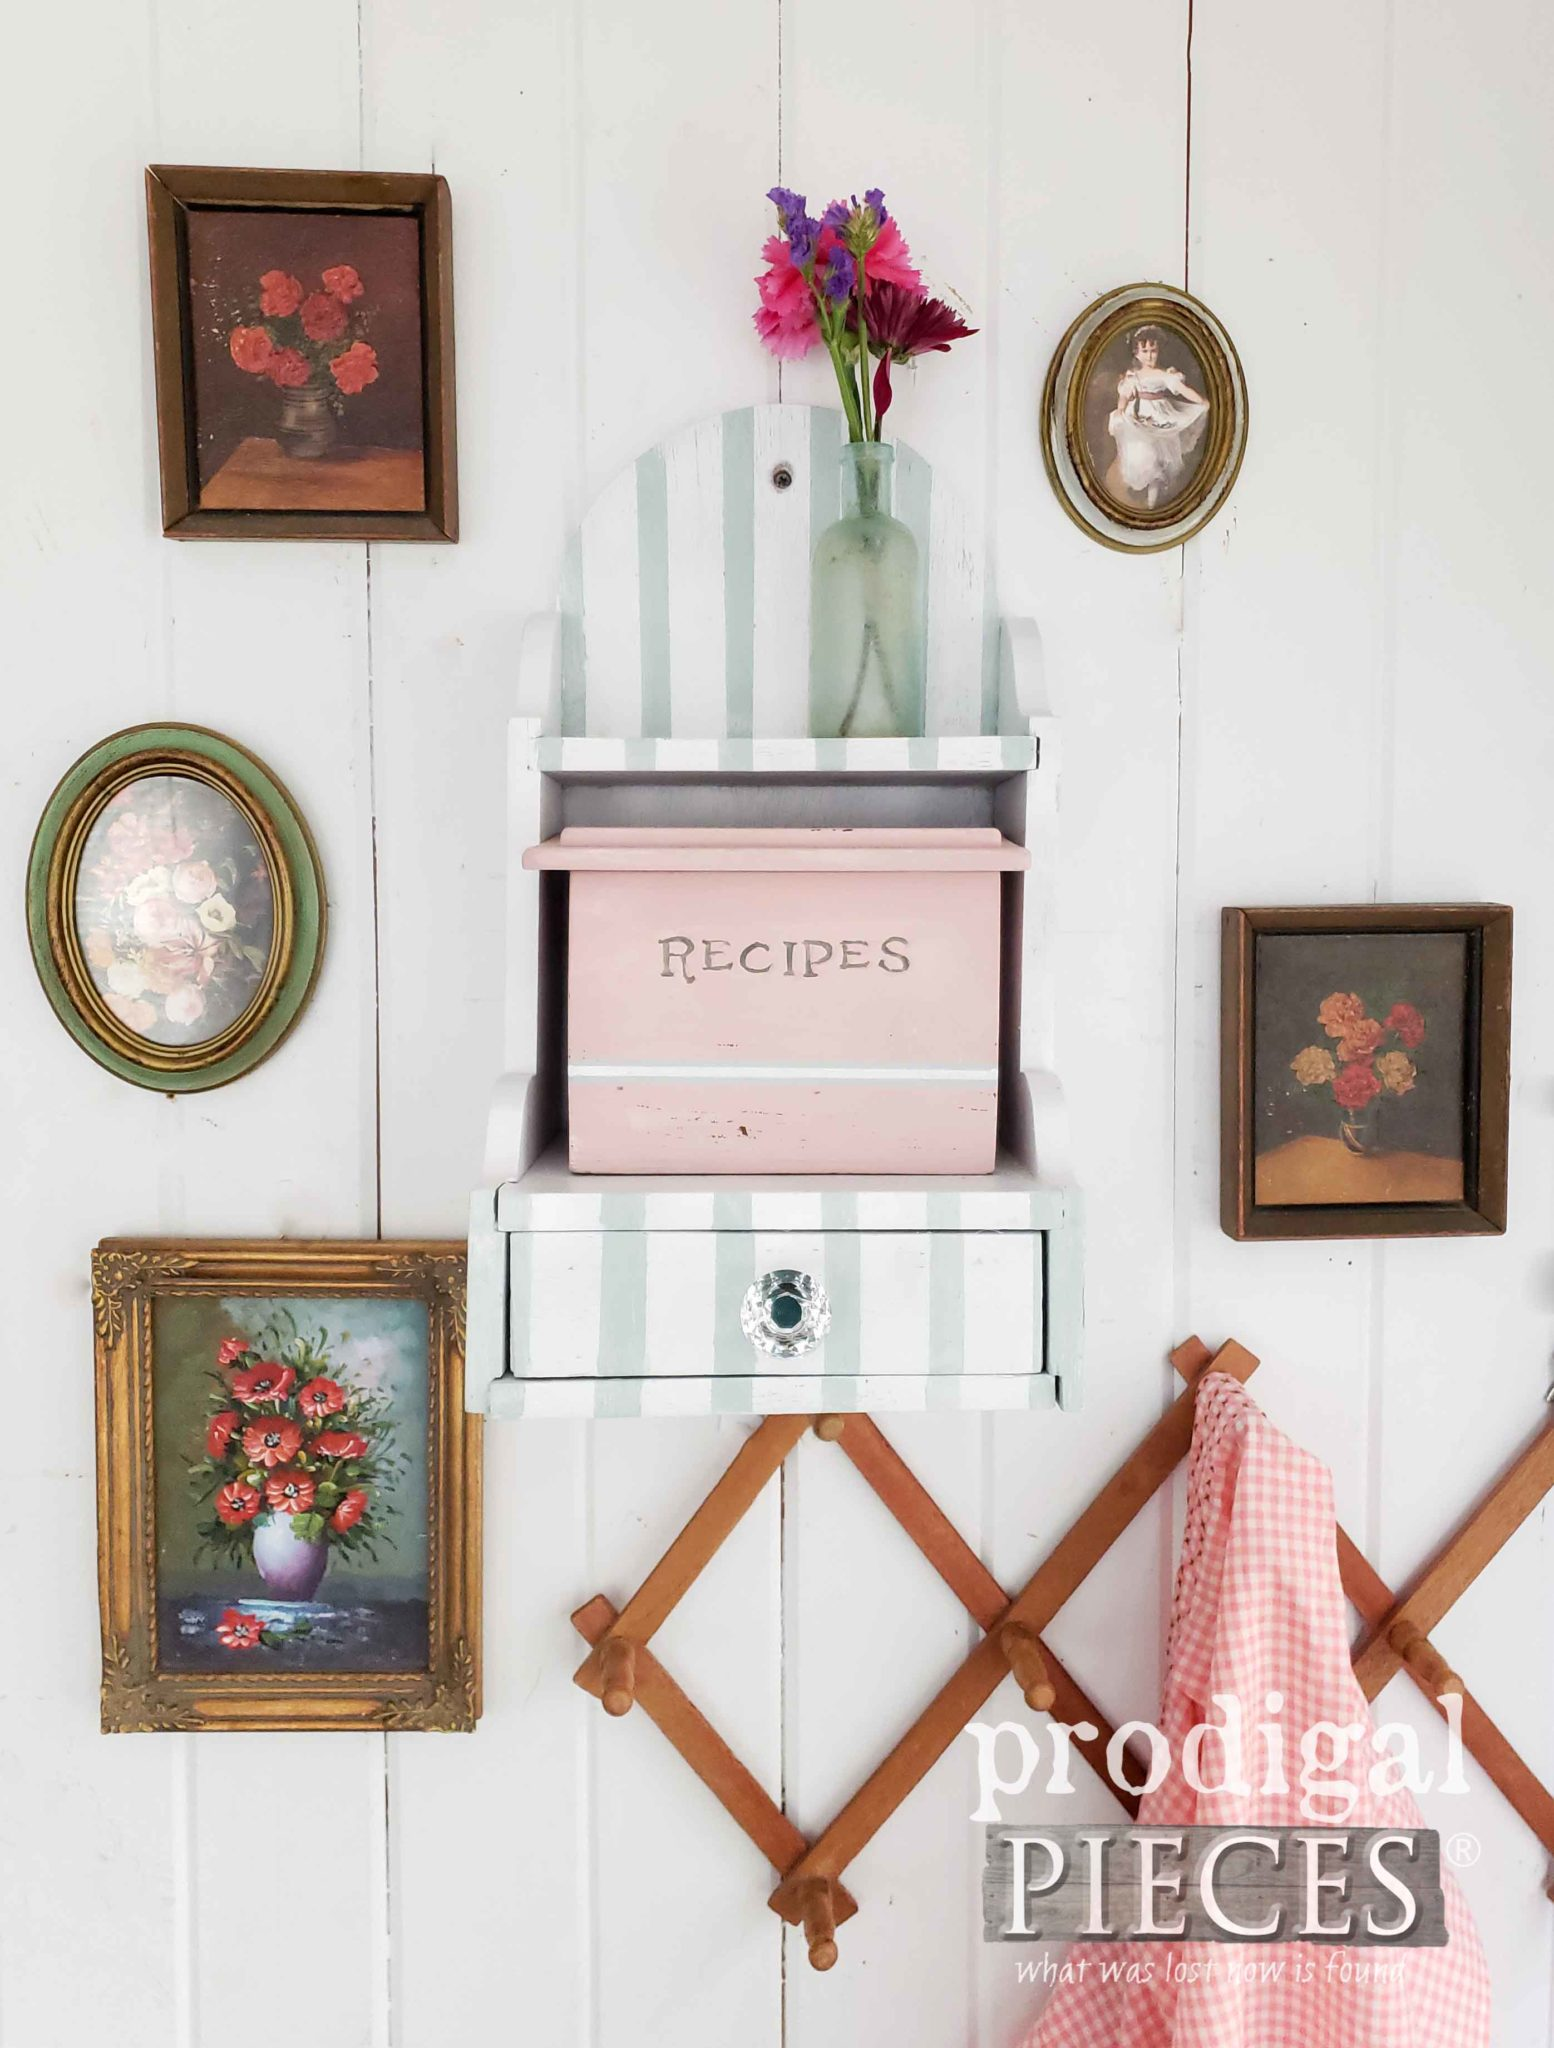 Cottage Style Vintage Recipe Box Holder by Larissa of Prodigal Pieces | prodigalpieces.com #prodigalpieces #diy #home #homedecor #vintage #retro #handmade